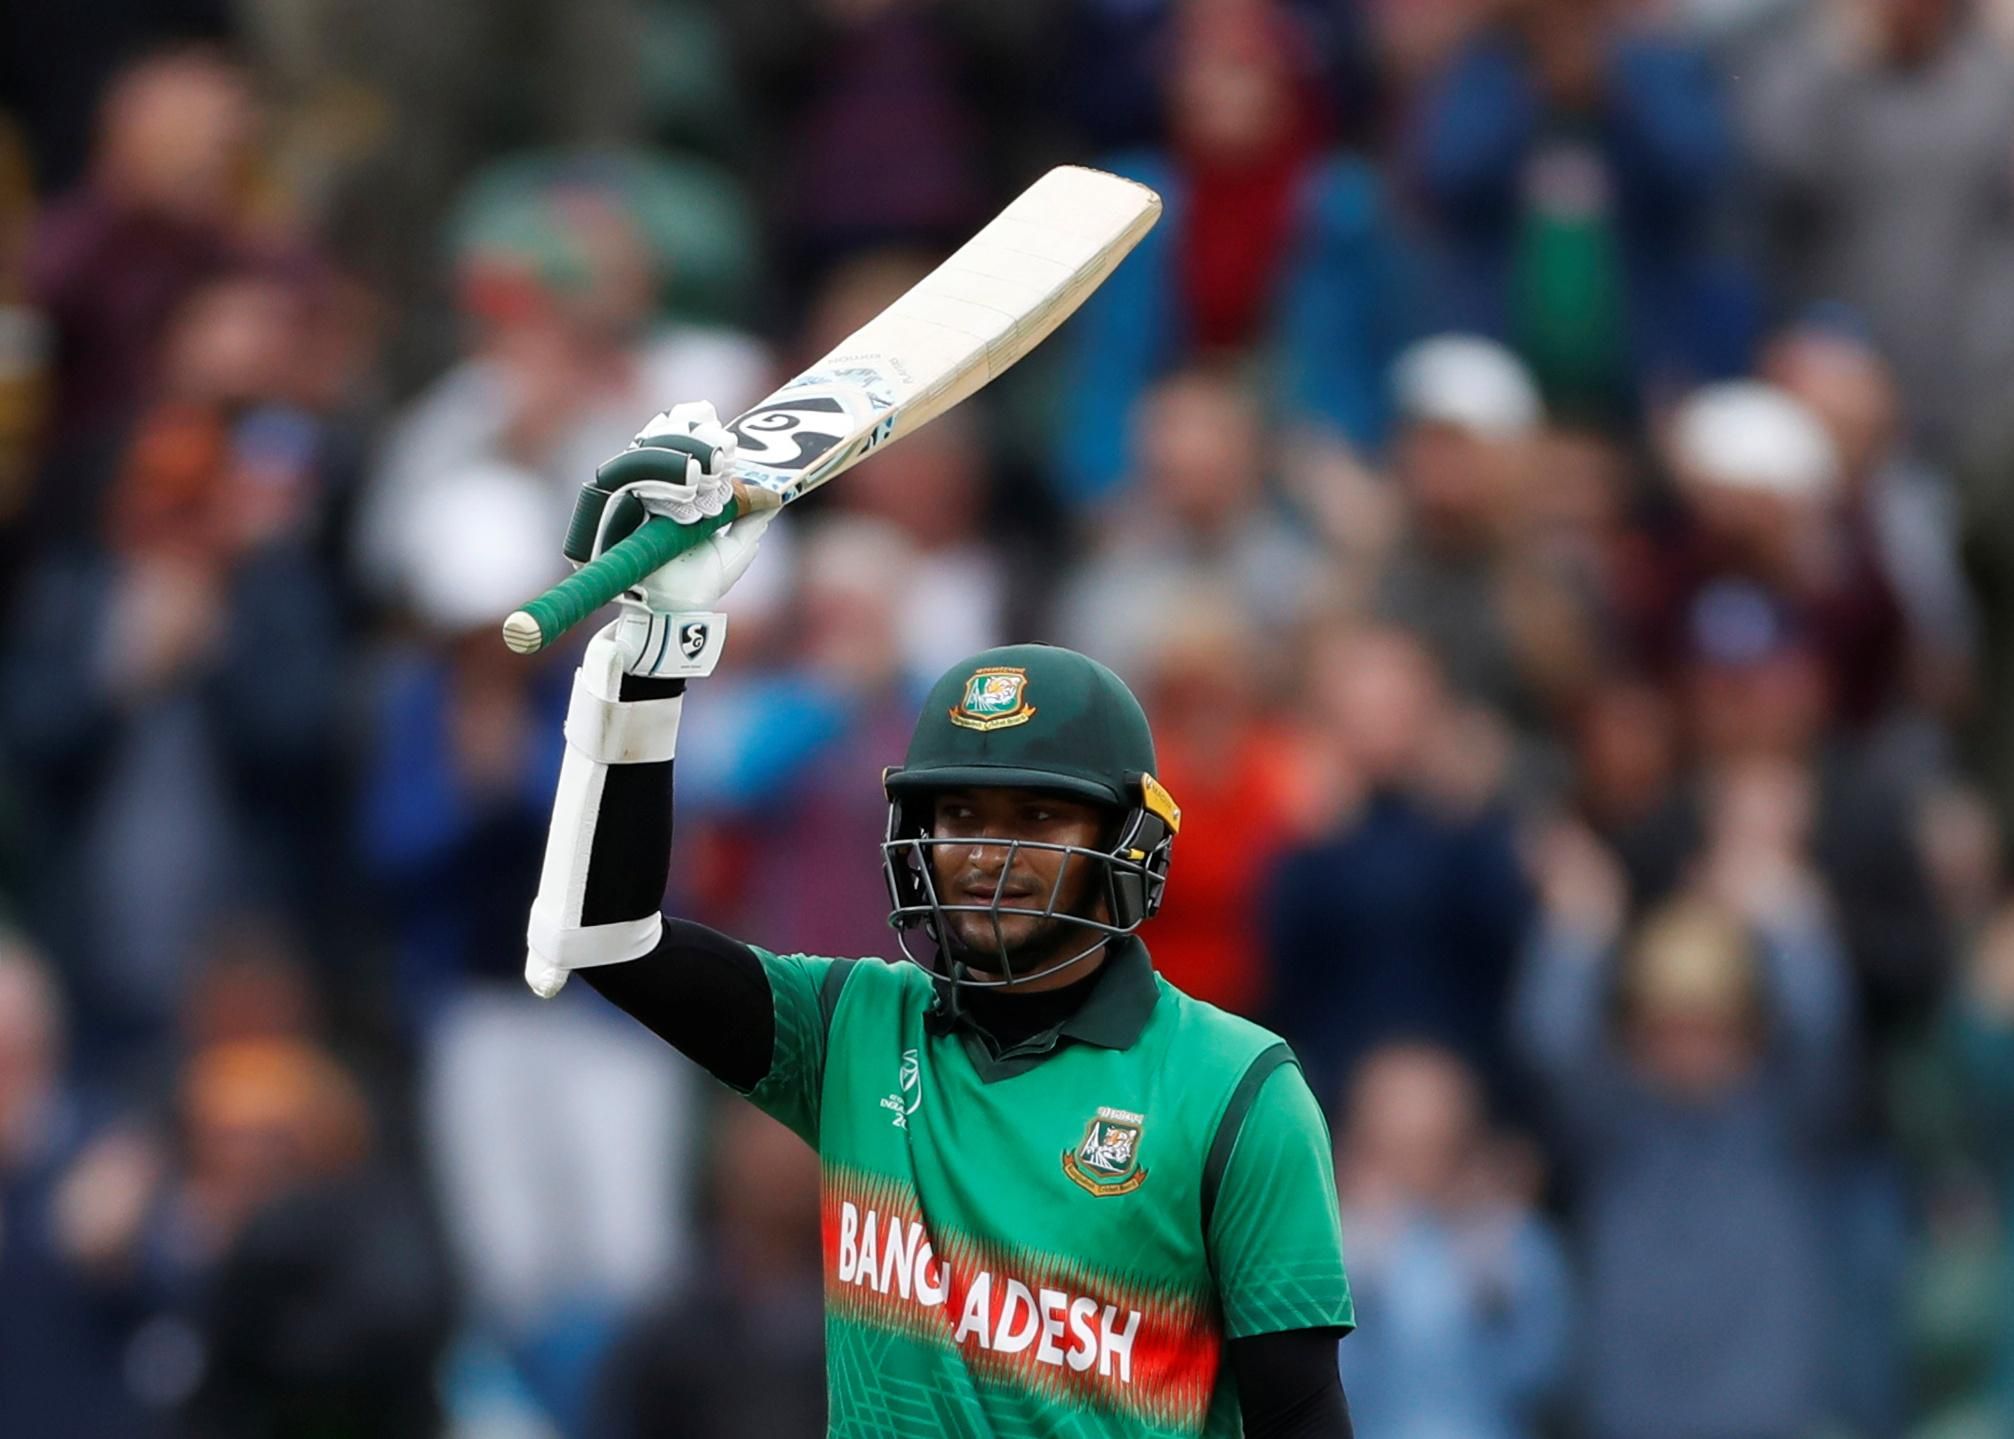 Bangladesh captain praises exceptional Shakib after Windies heroics